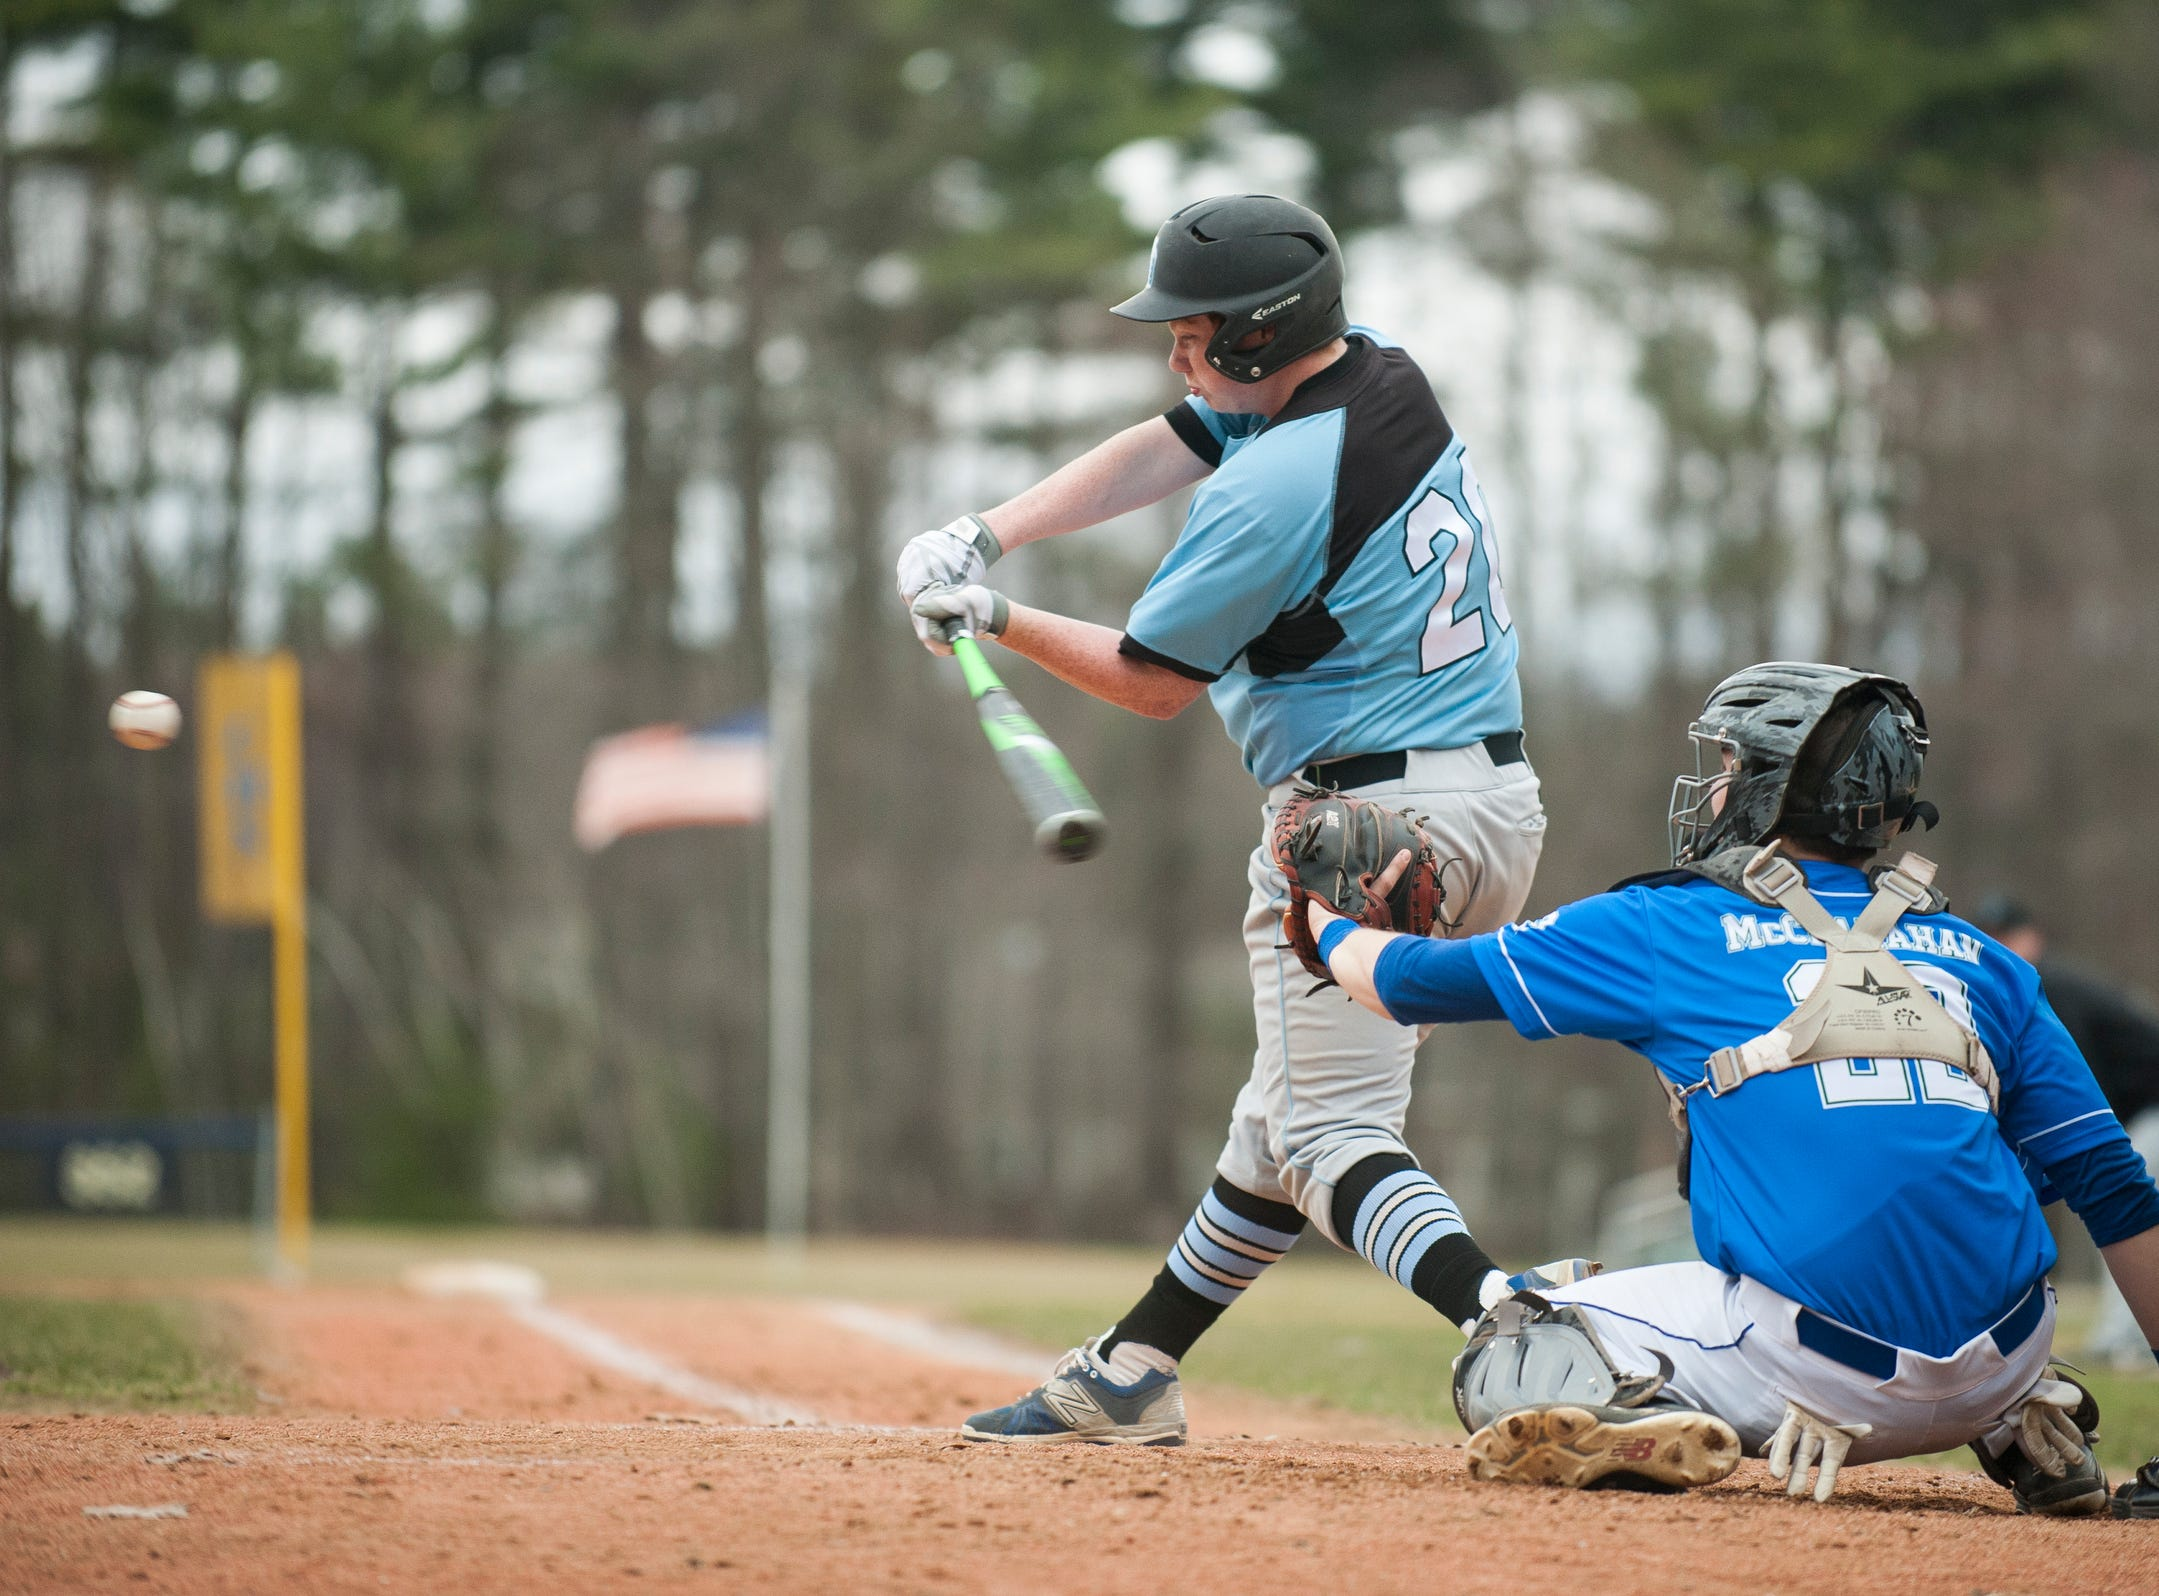 South Burlington's Ethan Moore (20) swings at a pitch during the boys baseball game between the South Burlington Wolves and the Colchester Lakers at Colchester high school on Thursday afternoon April 18, 2019 in Colchester, Vermont.